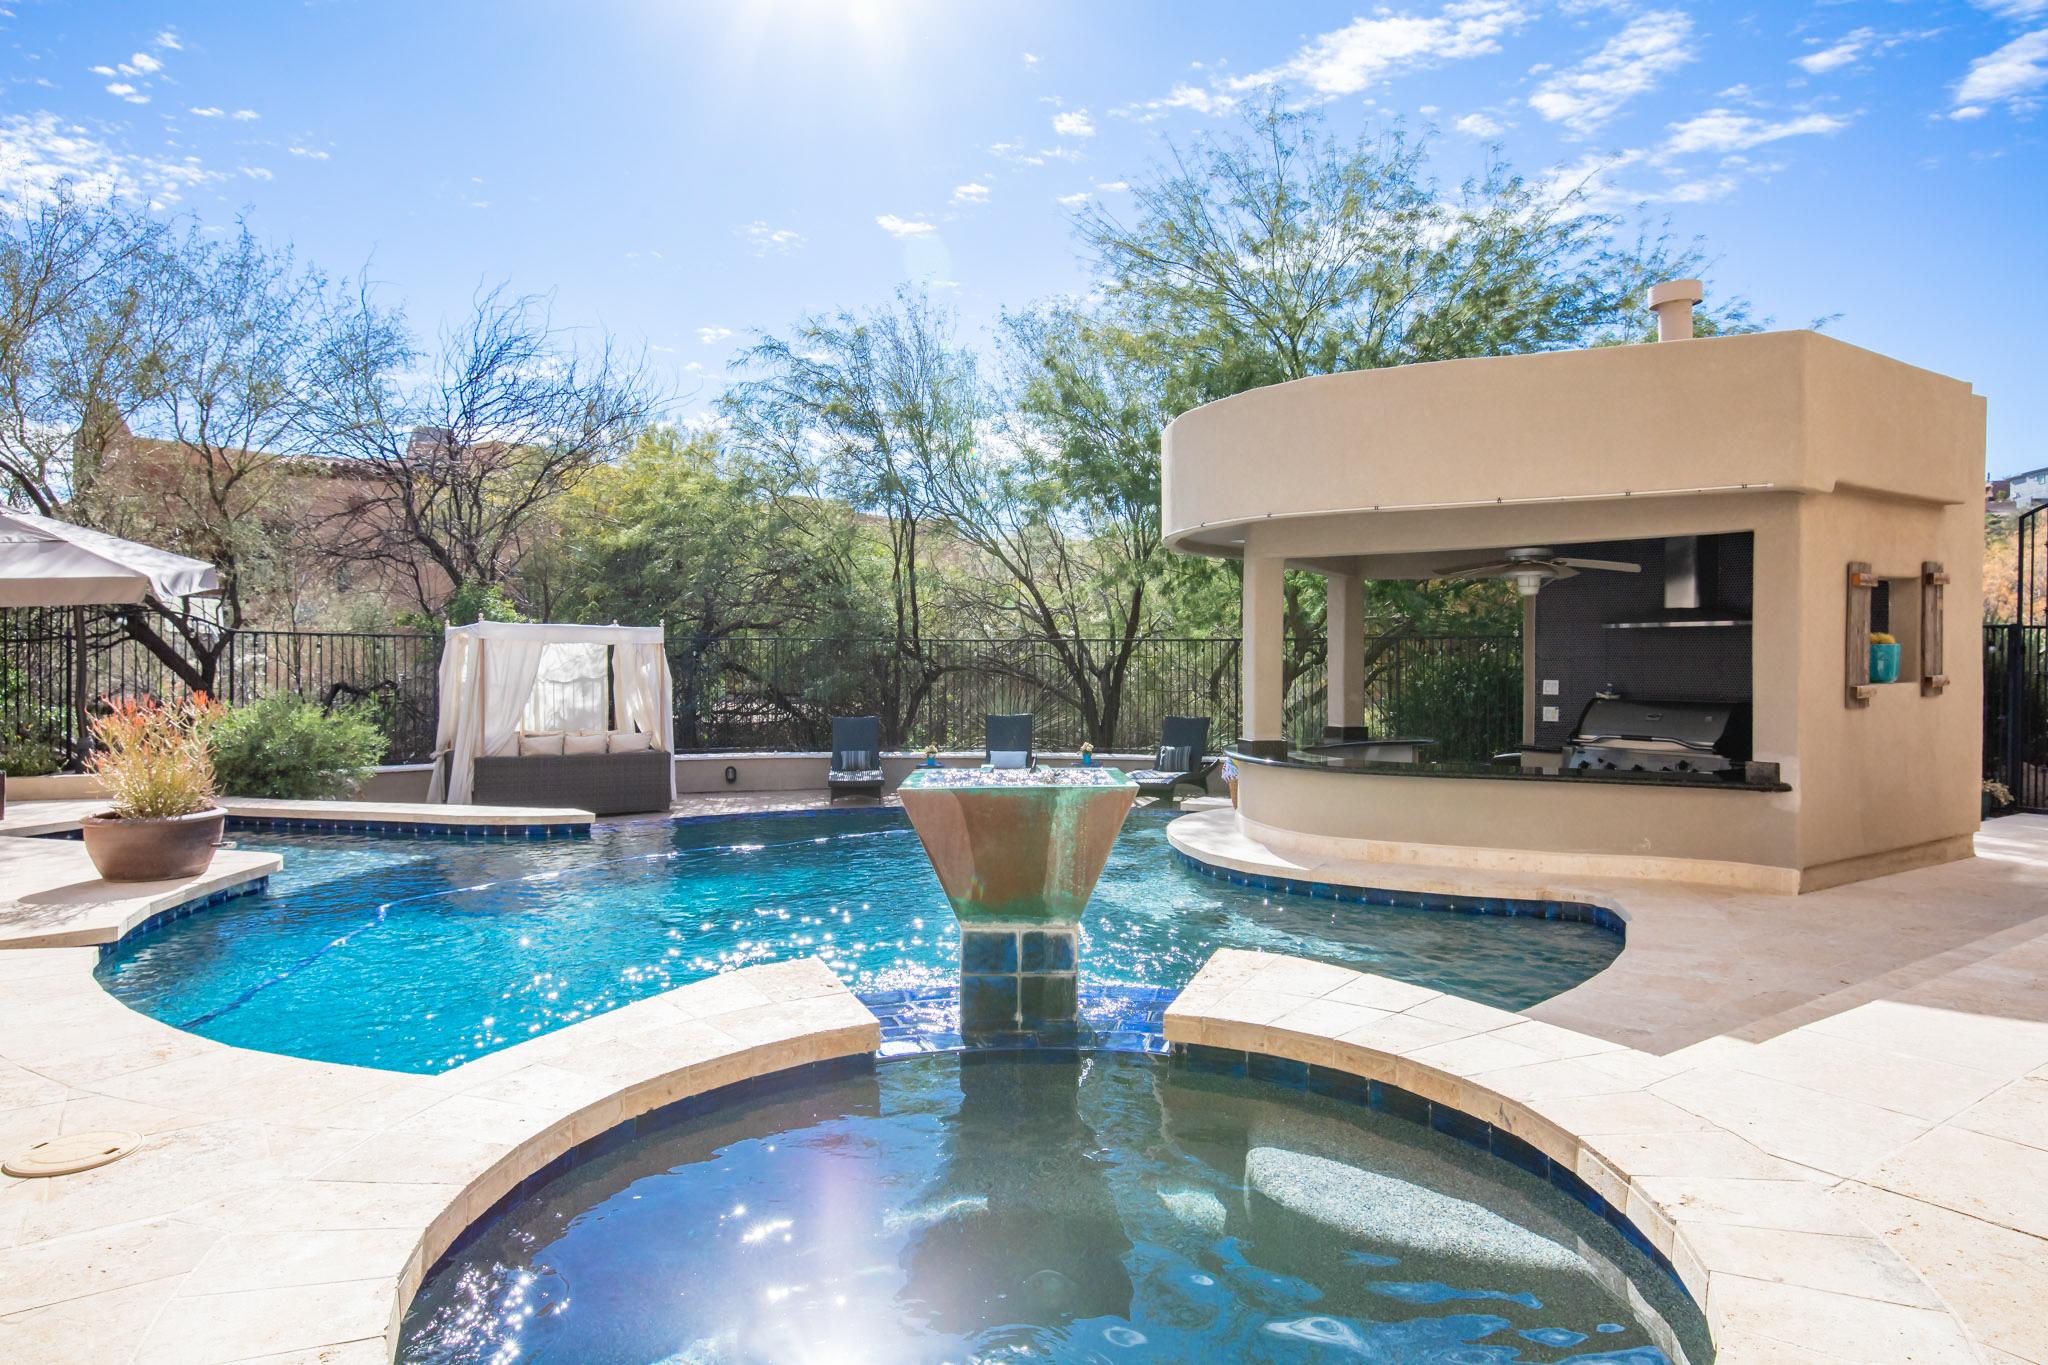 The unbelievable outdoor entertaining space features a heated pool, hot tub, cabana, and covered kitchen area.